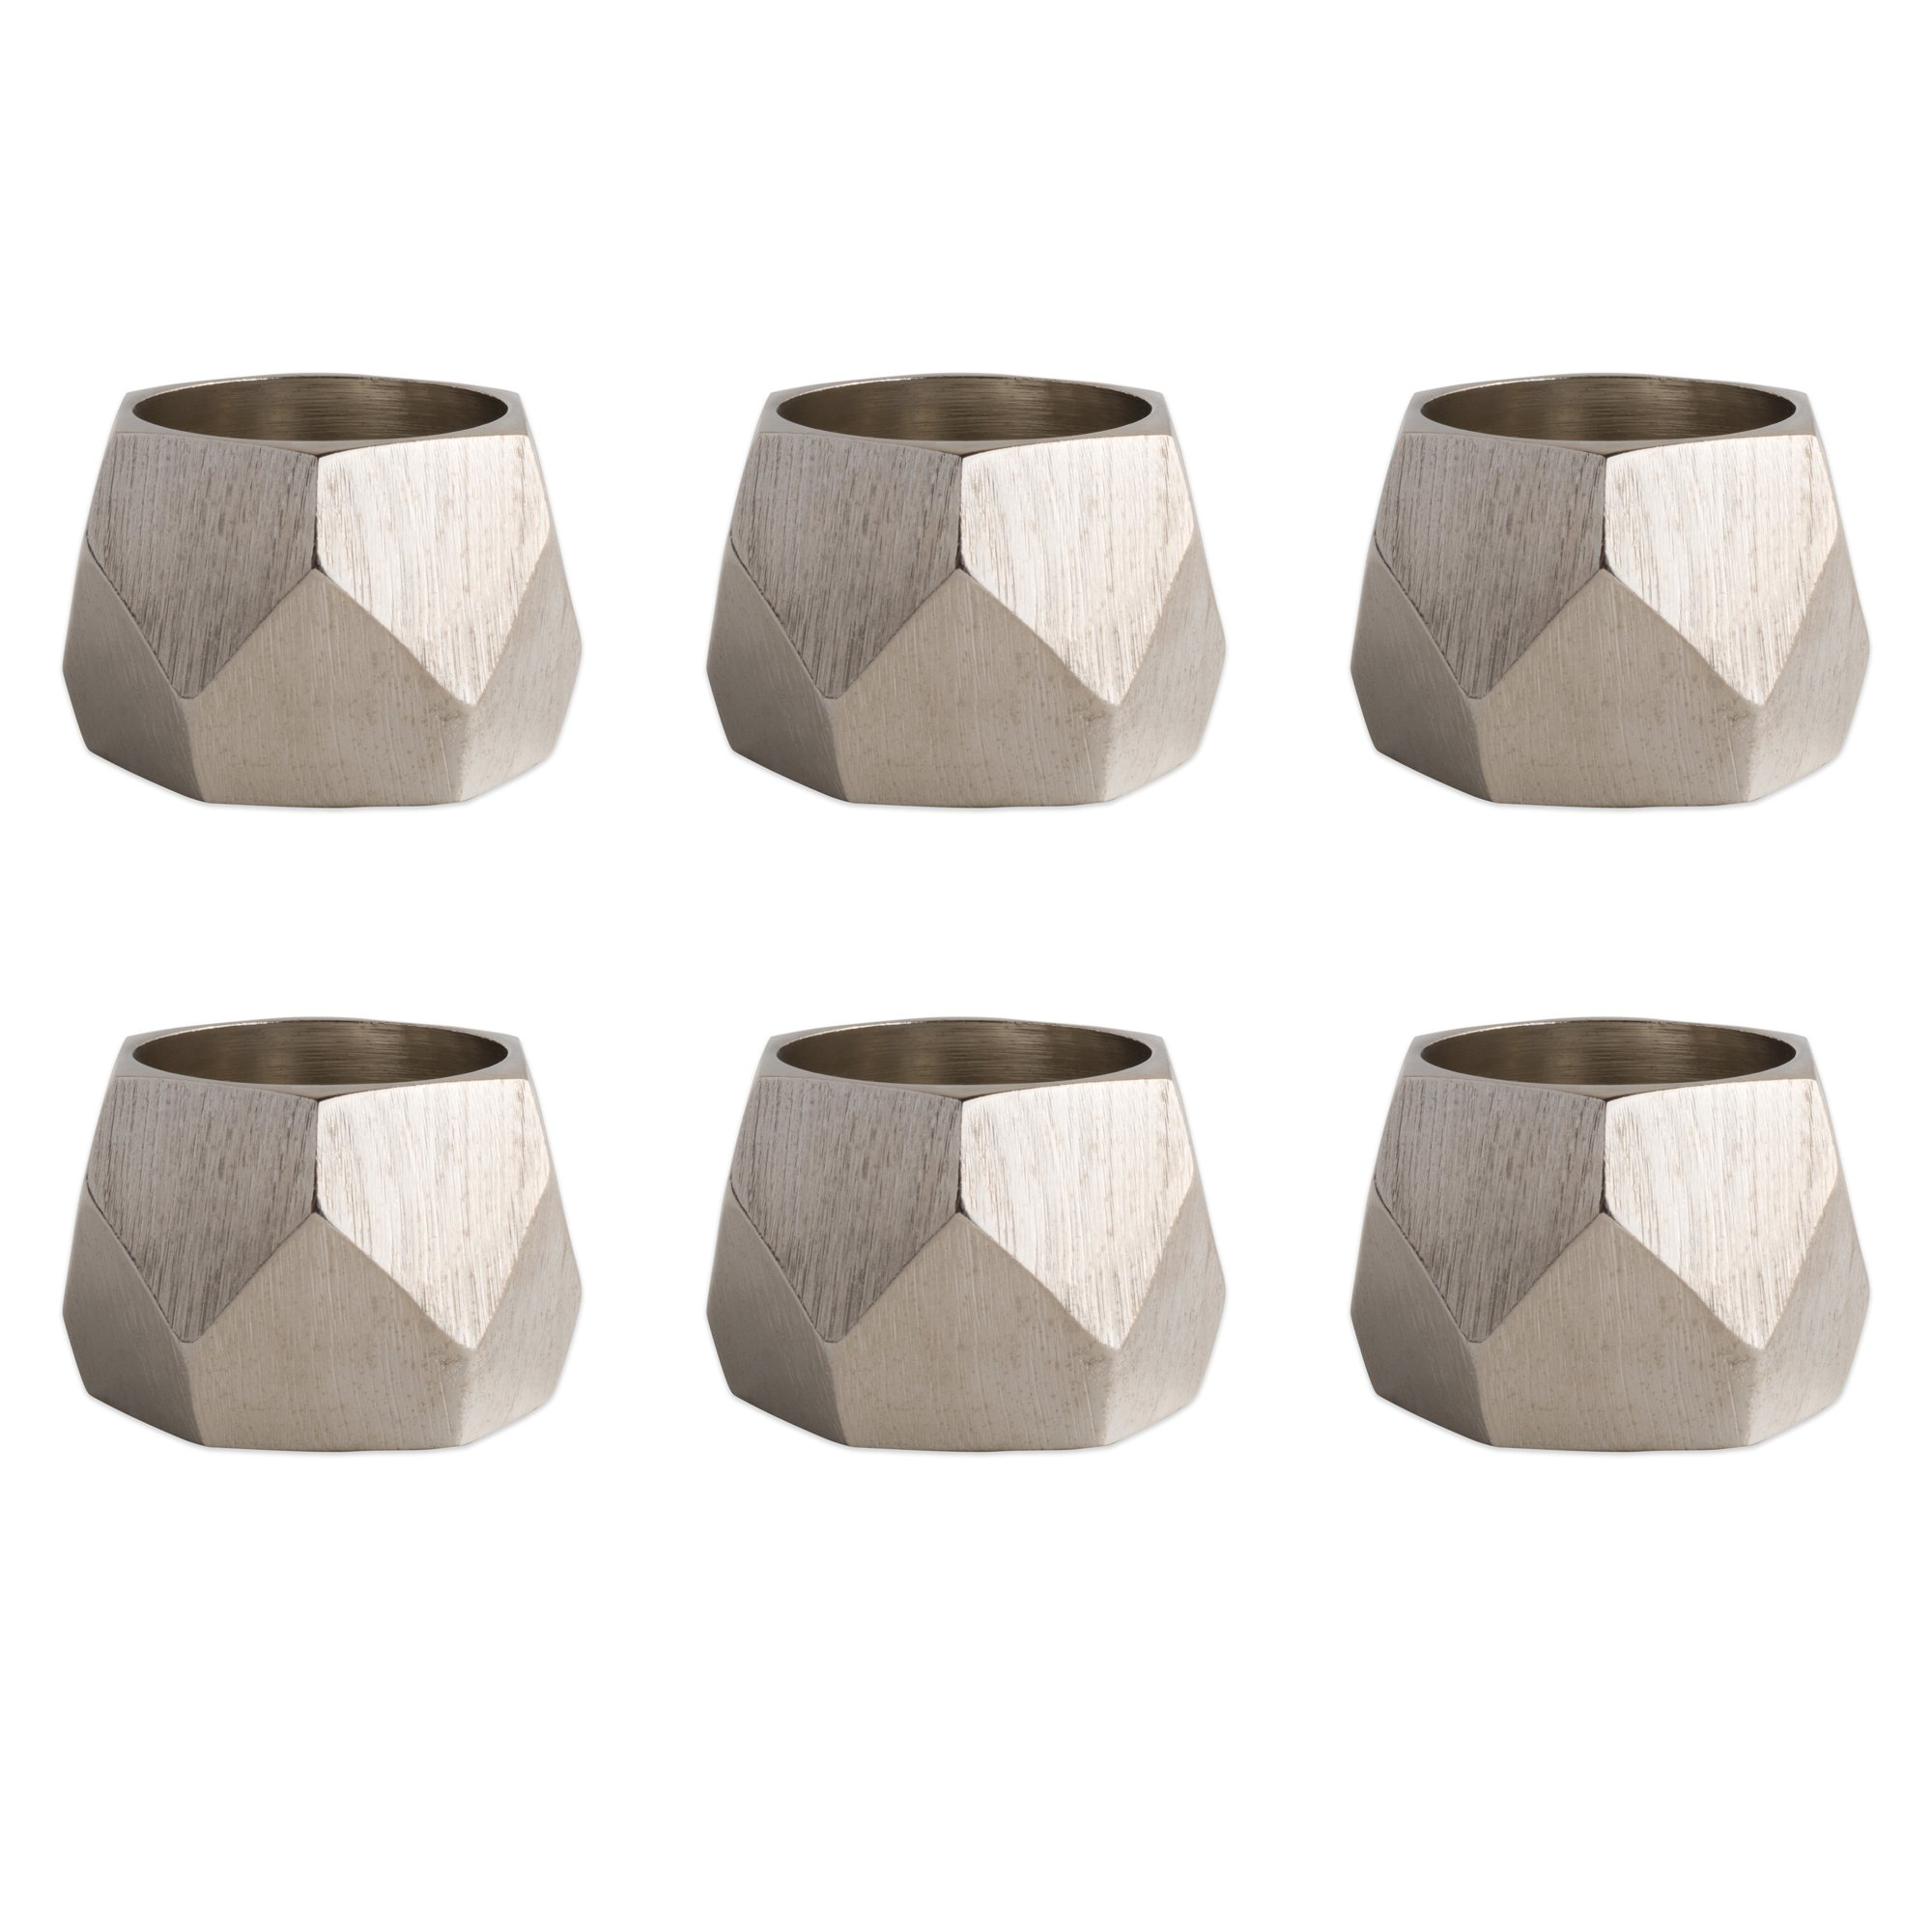 DII Contemporary Chic Napkin Rings for Dinner Parties, Weddings Receptions, Family Gatherings, or Everyday Use, Set Your Table With Style - Silver Geometric Triangle Band, Set of 6